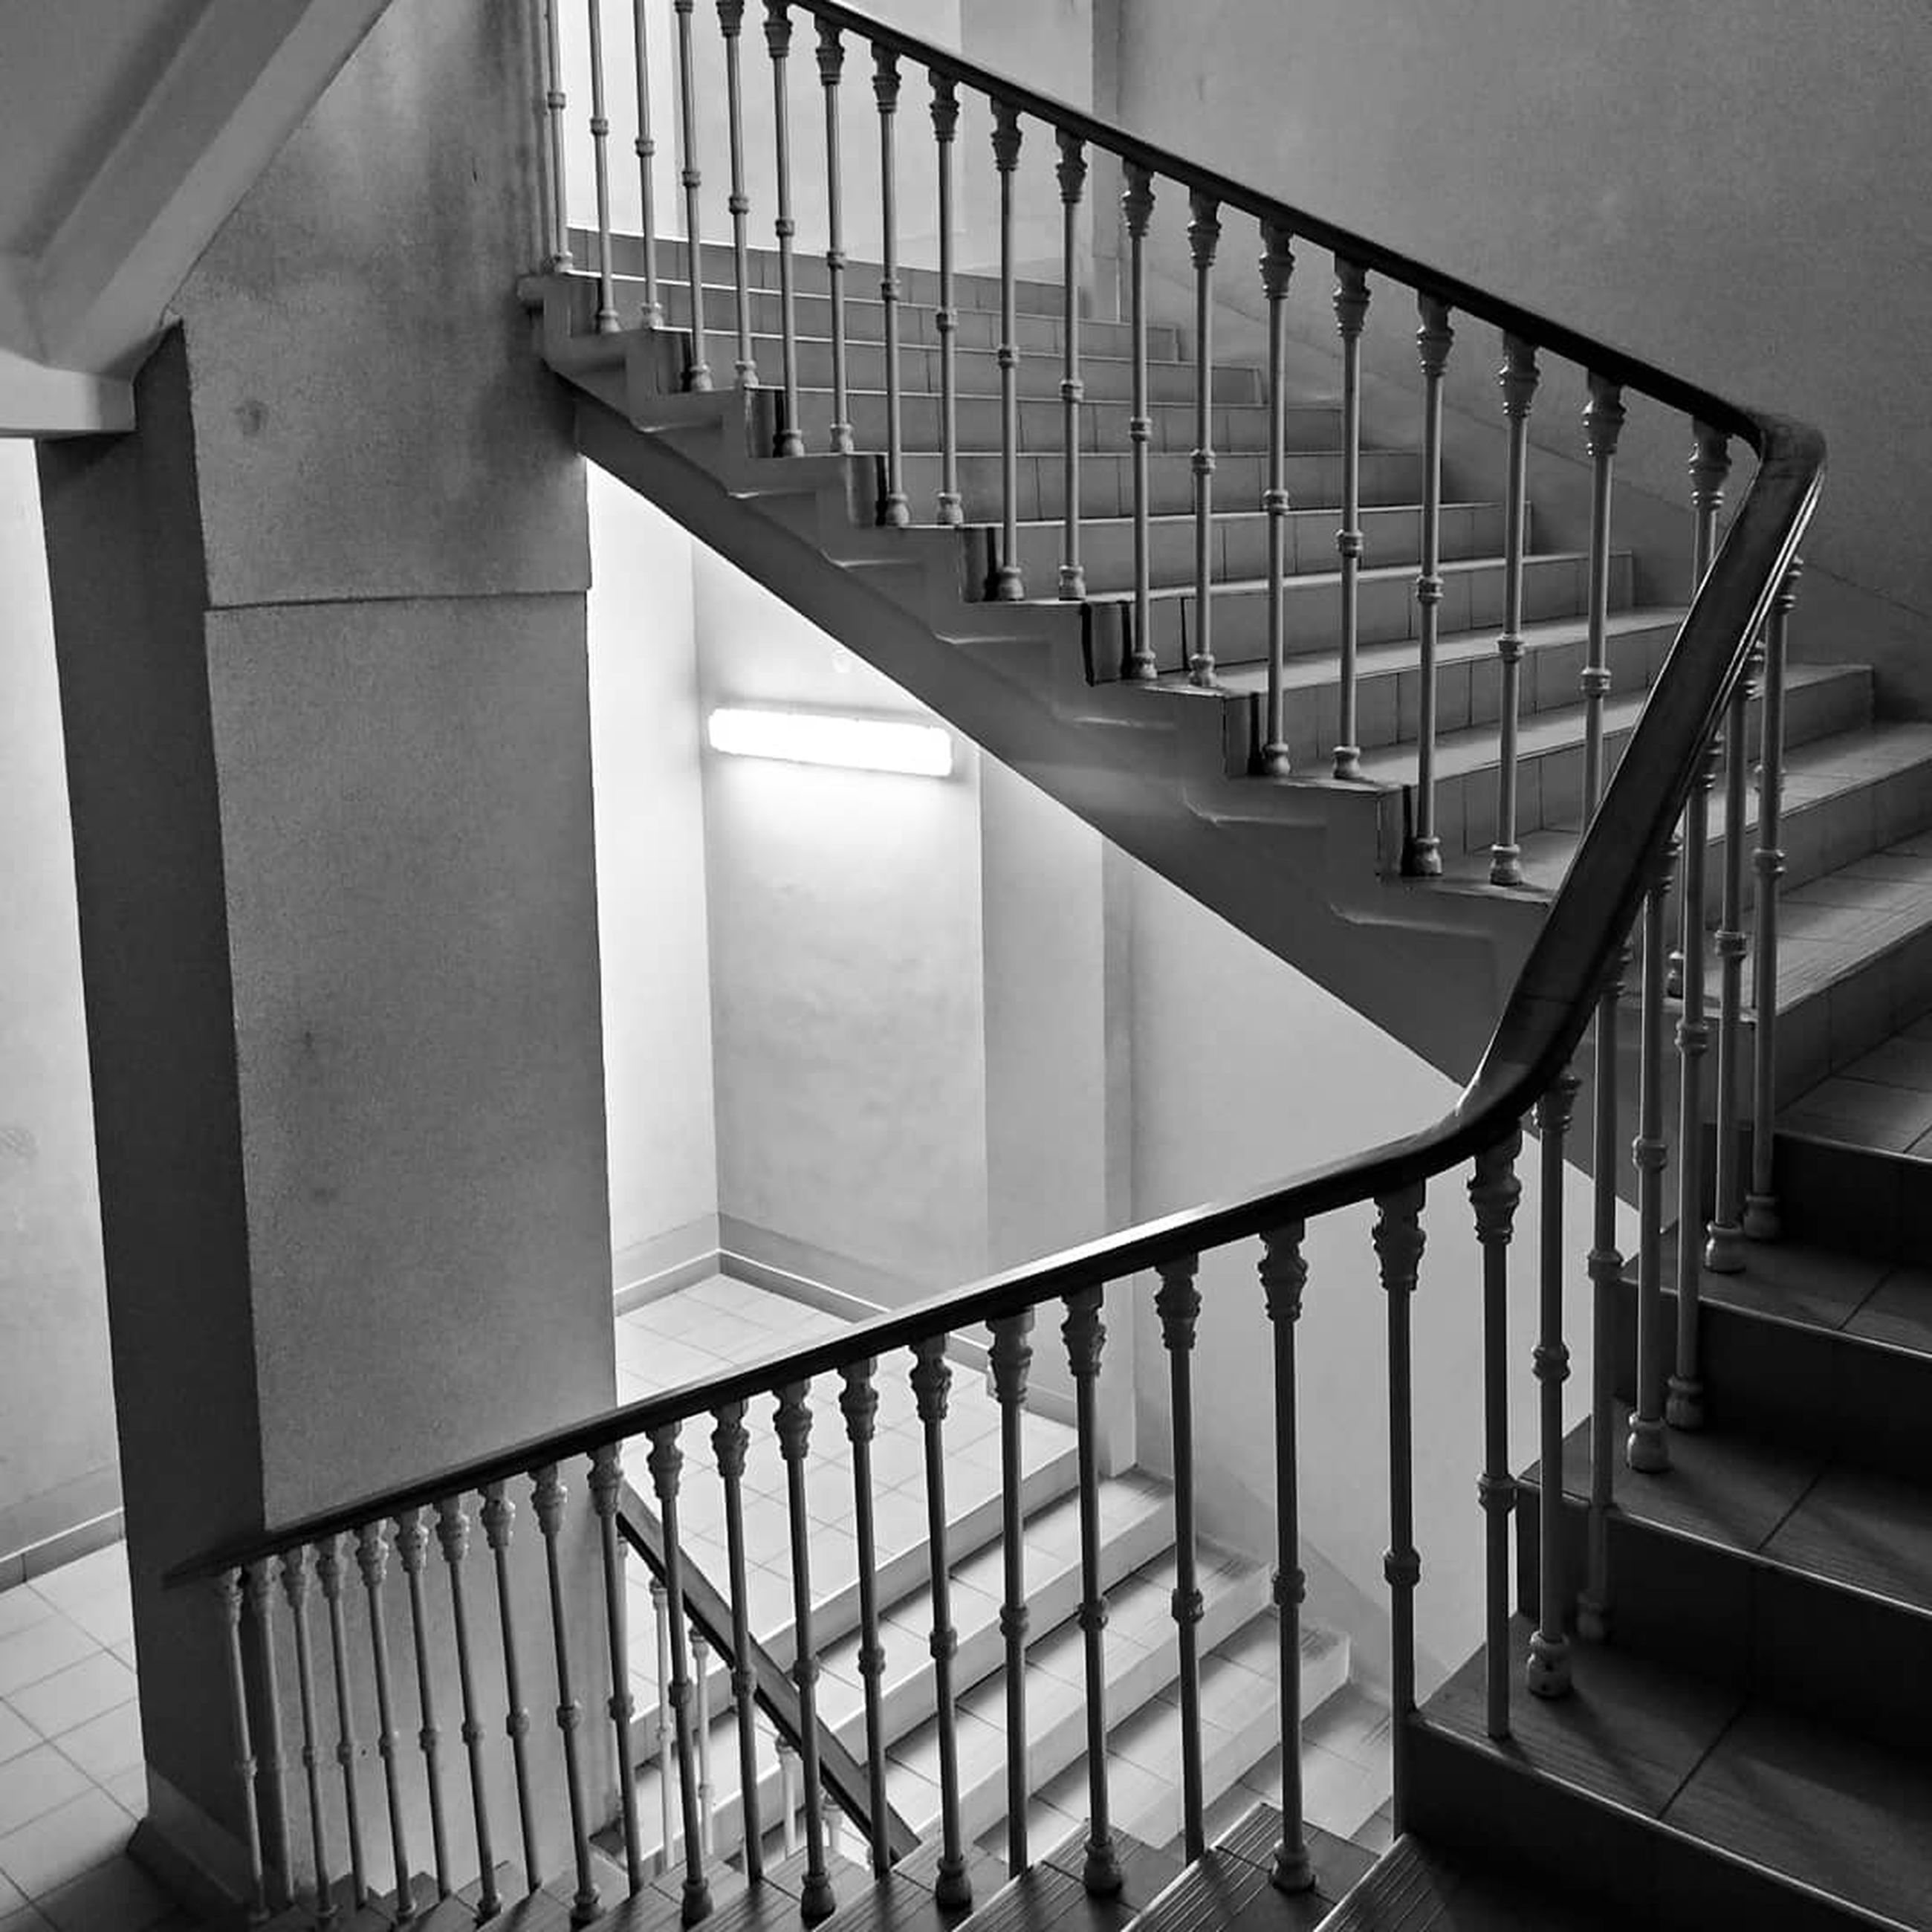 steps and staircases, staircase, architecture, railing, built structure, indoors, no people, building, absence, pattern, day, repetition, empty, metal, balustrade, in a row, wall - building feature, diminishing perspective, spiral